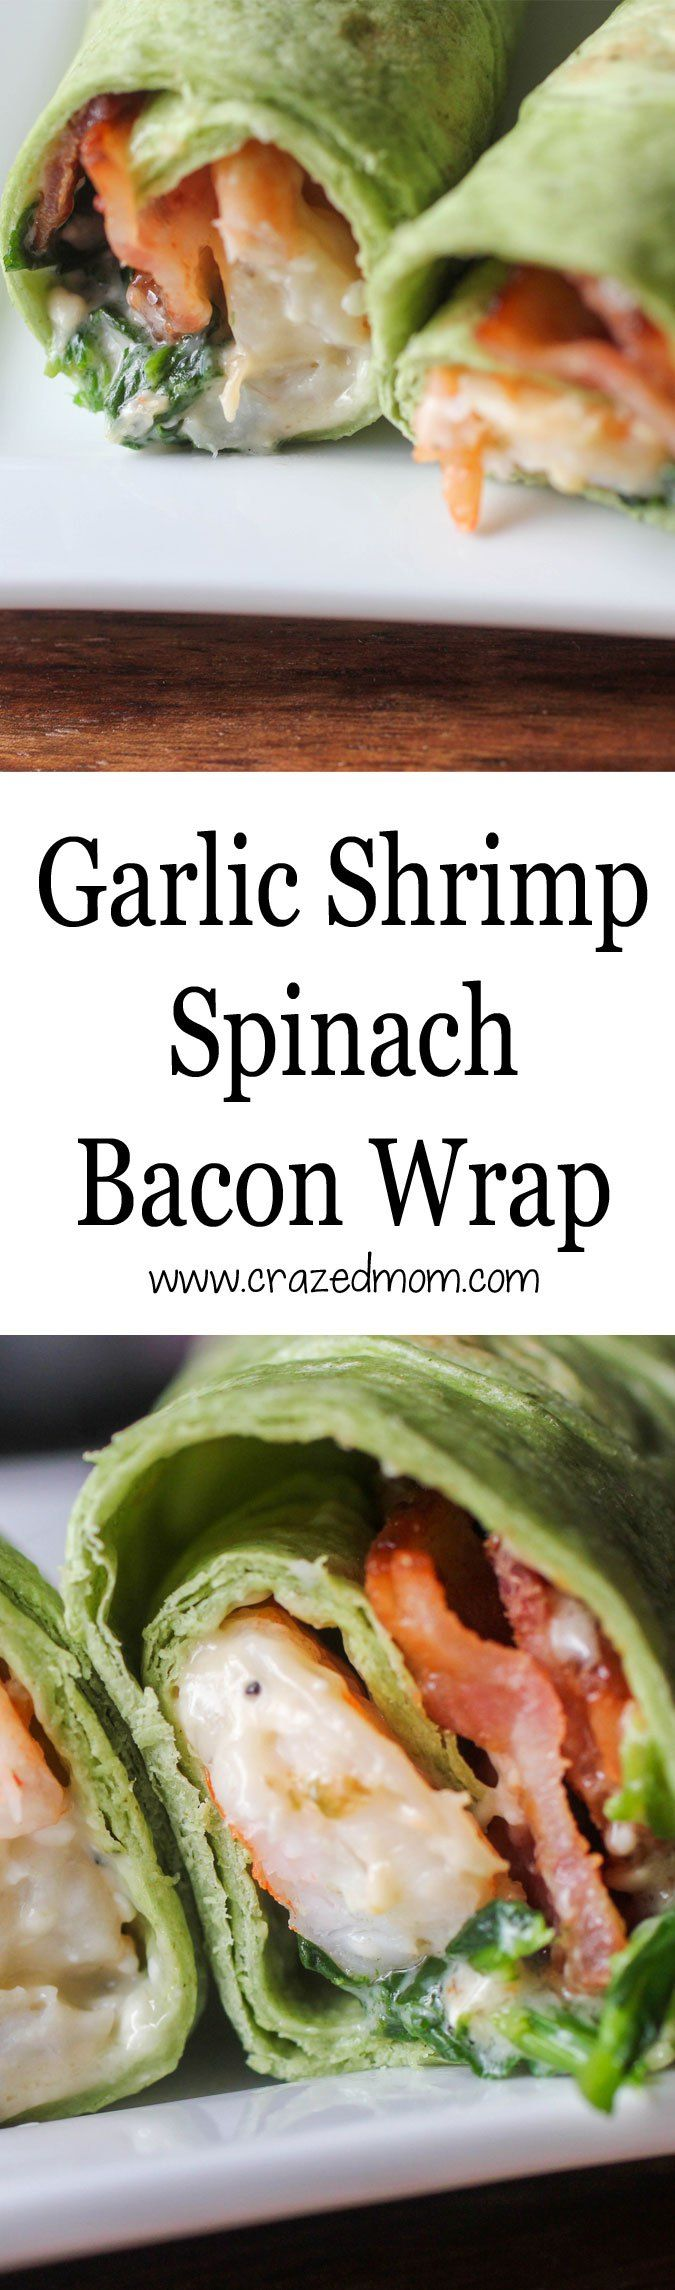 Garlic Shrimp Spinach Bacon Wrap